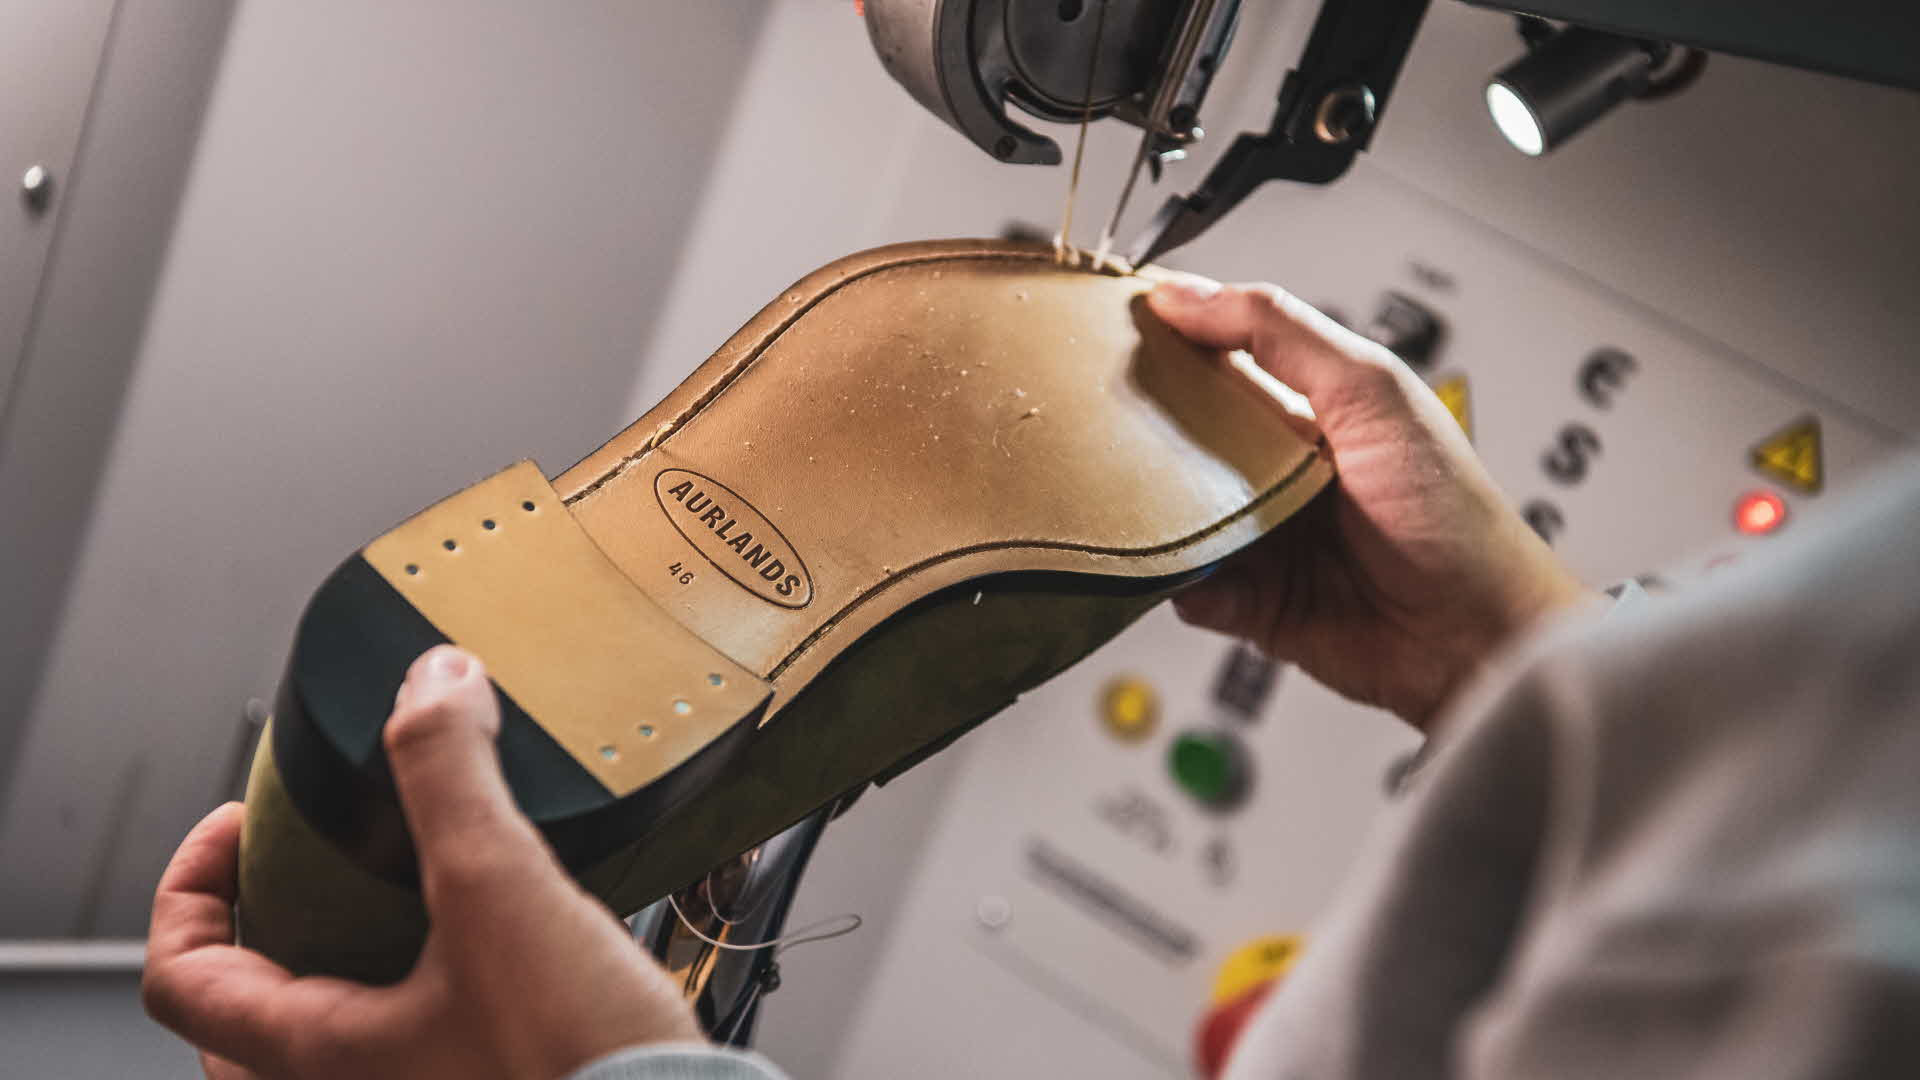 Worker is stitching underside sole of Aurland shoe. Aurlands new logo is popping in the mini spotlight attached to sewing machine.